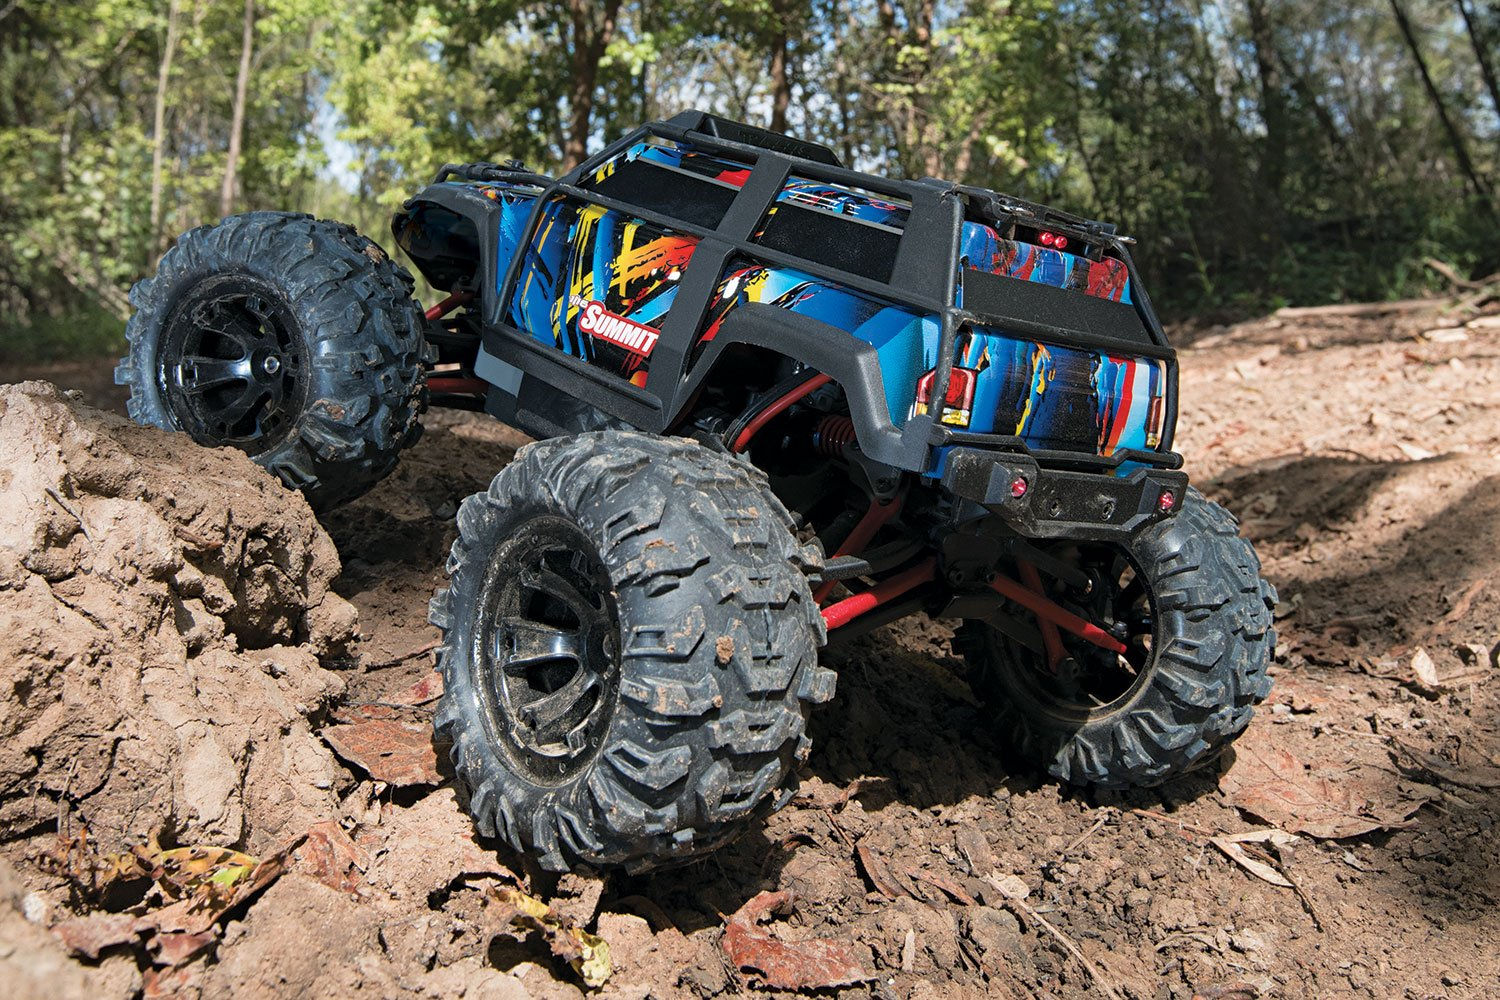 Traxxas 1 16 Summit 4wd Extreme Terrain Truck Rock N Thread Stampede 4x4 Vxl Press Release And Pics Roll Scale Toys Games